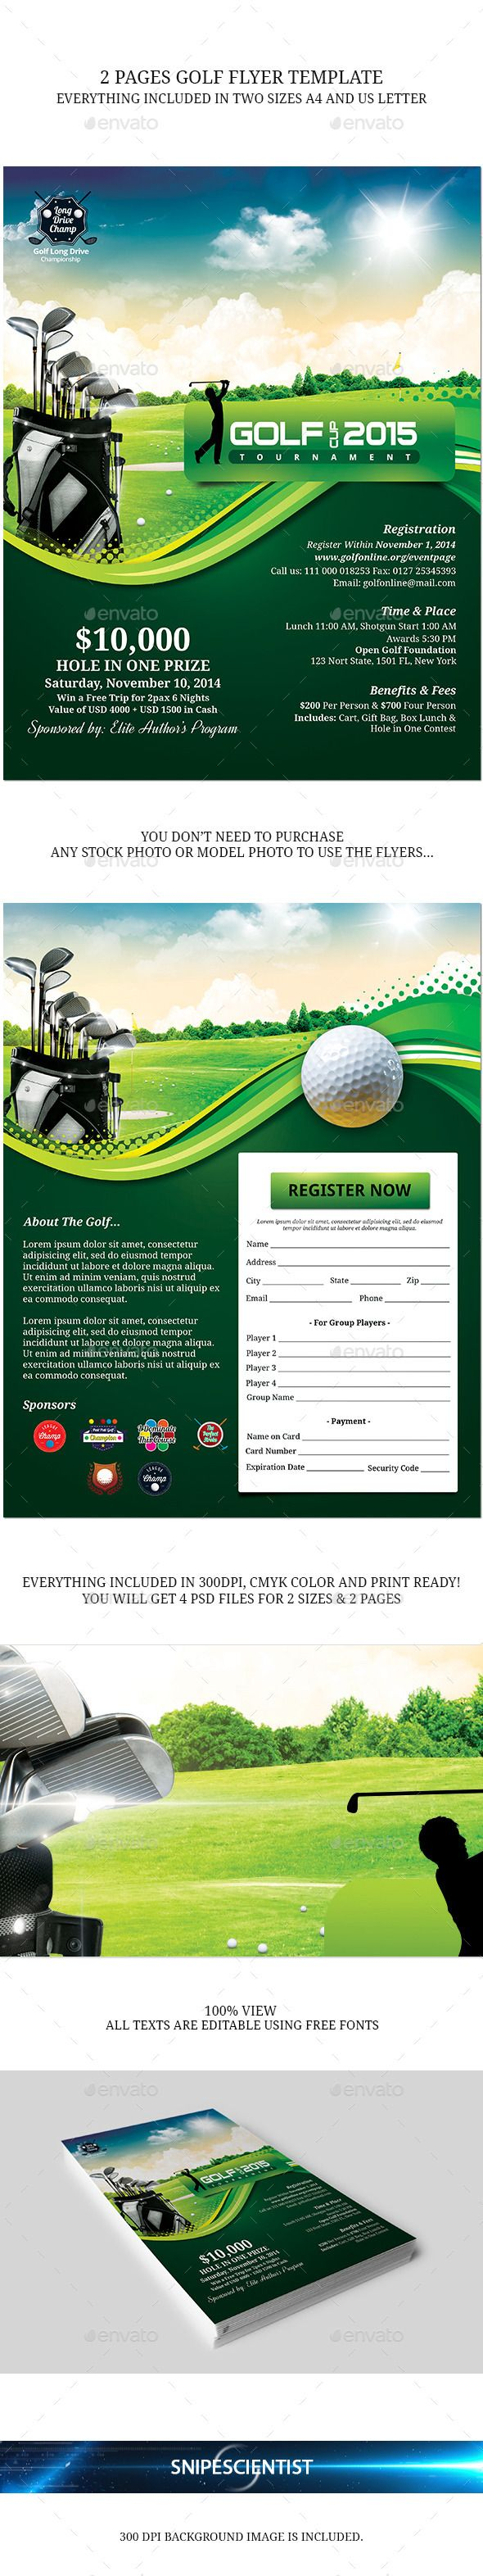 best ideas about event flyers flyer design golf event flyer template